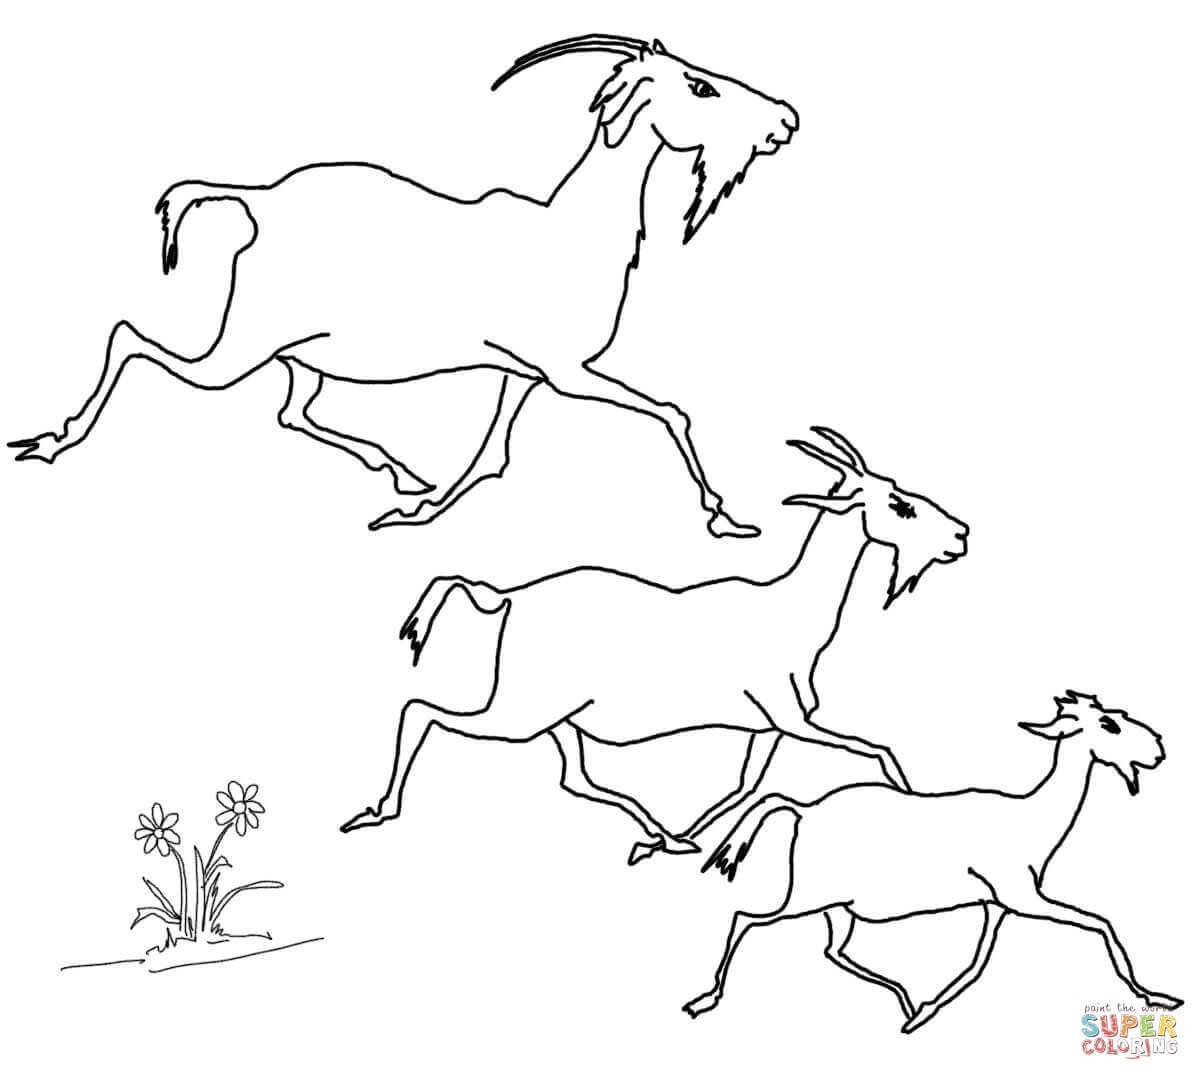 The Three Billy Goats Gruff Coloring Pages - Coloring Home - Three Billy Goats Gruff Masks Printable Free